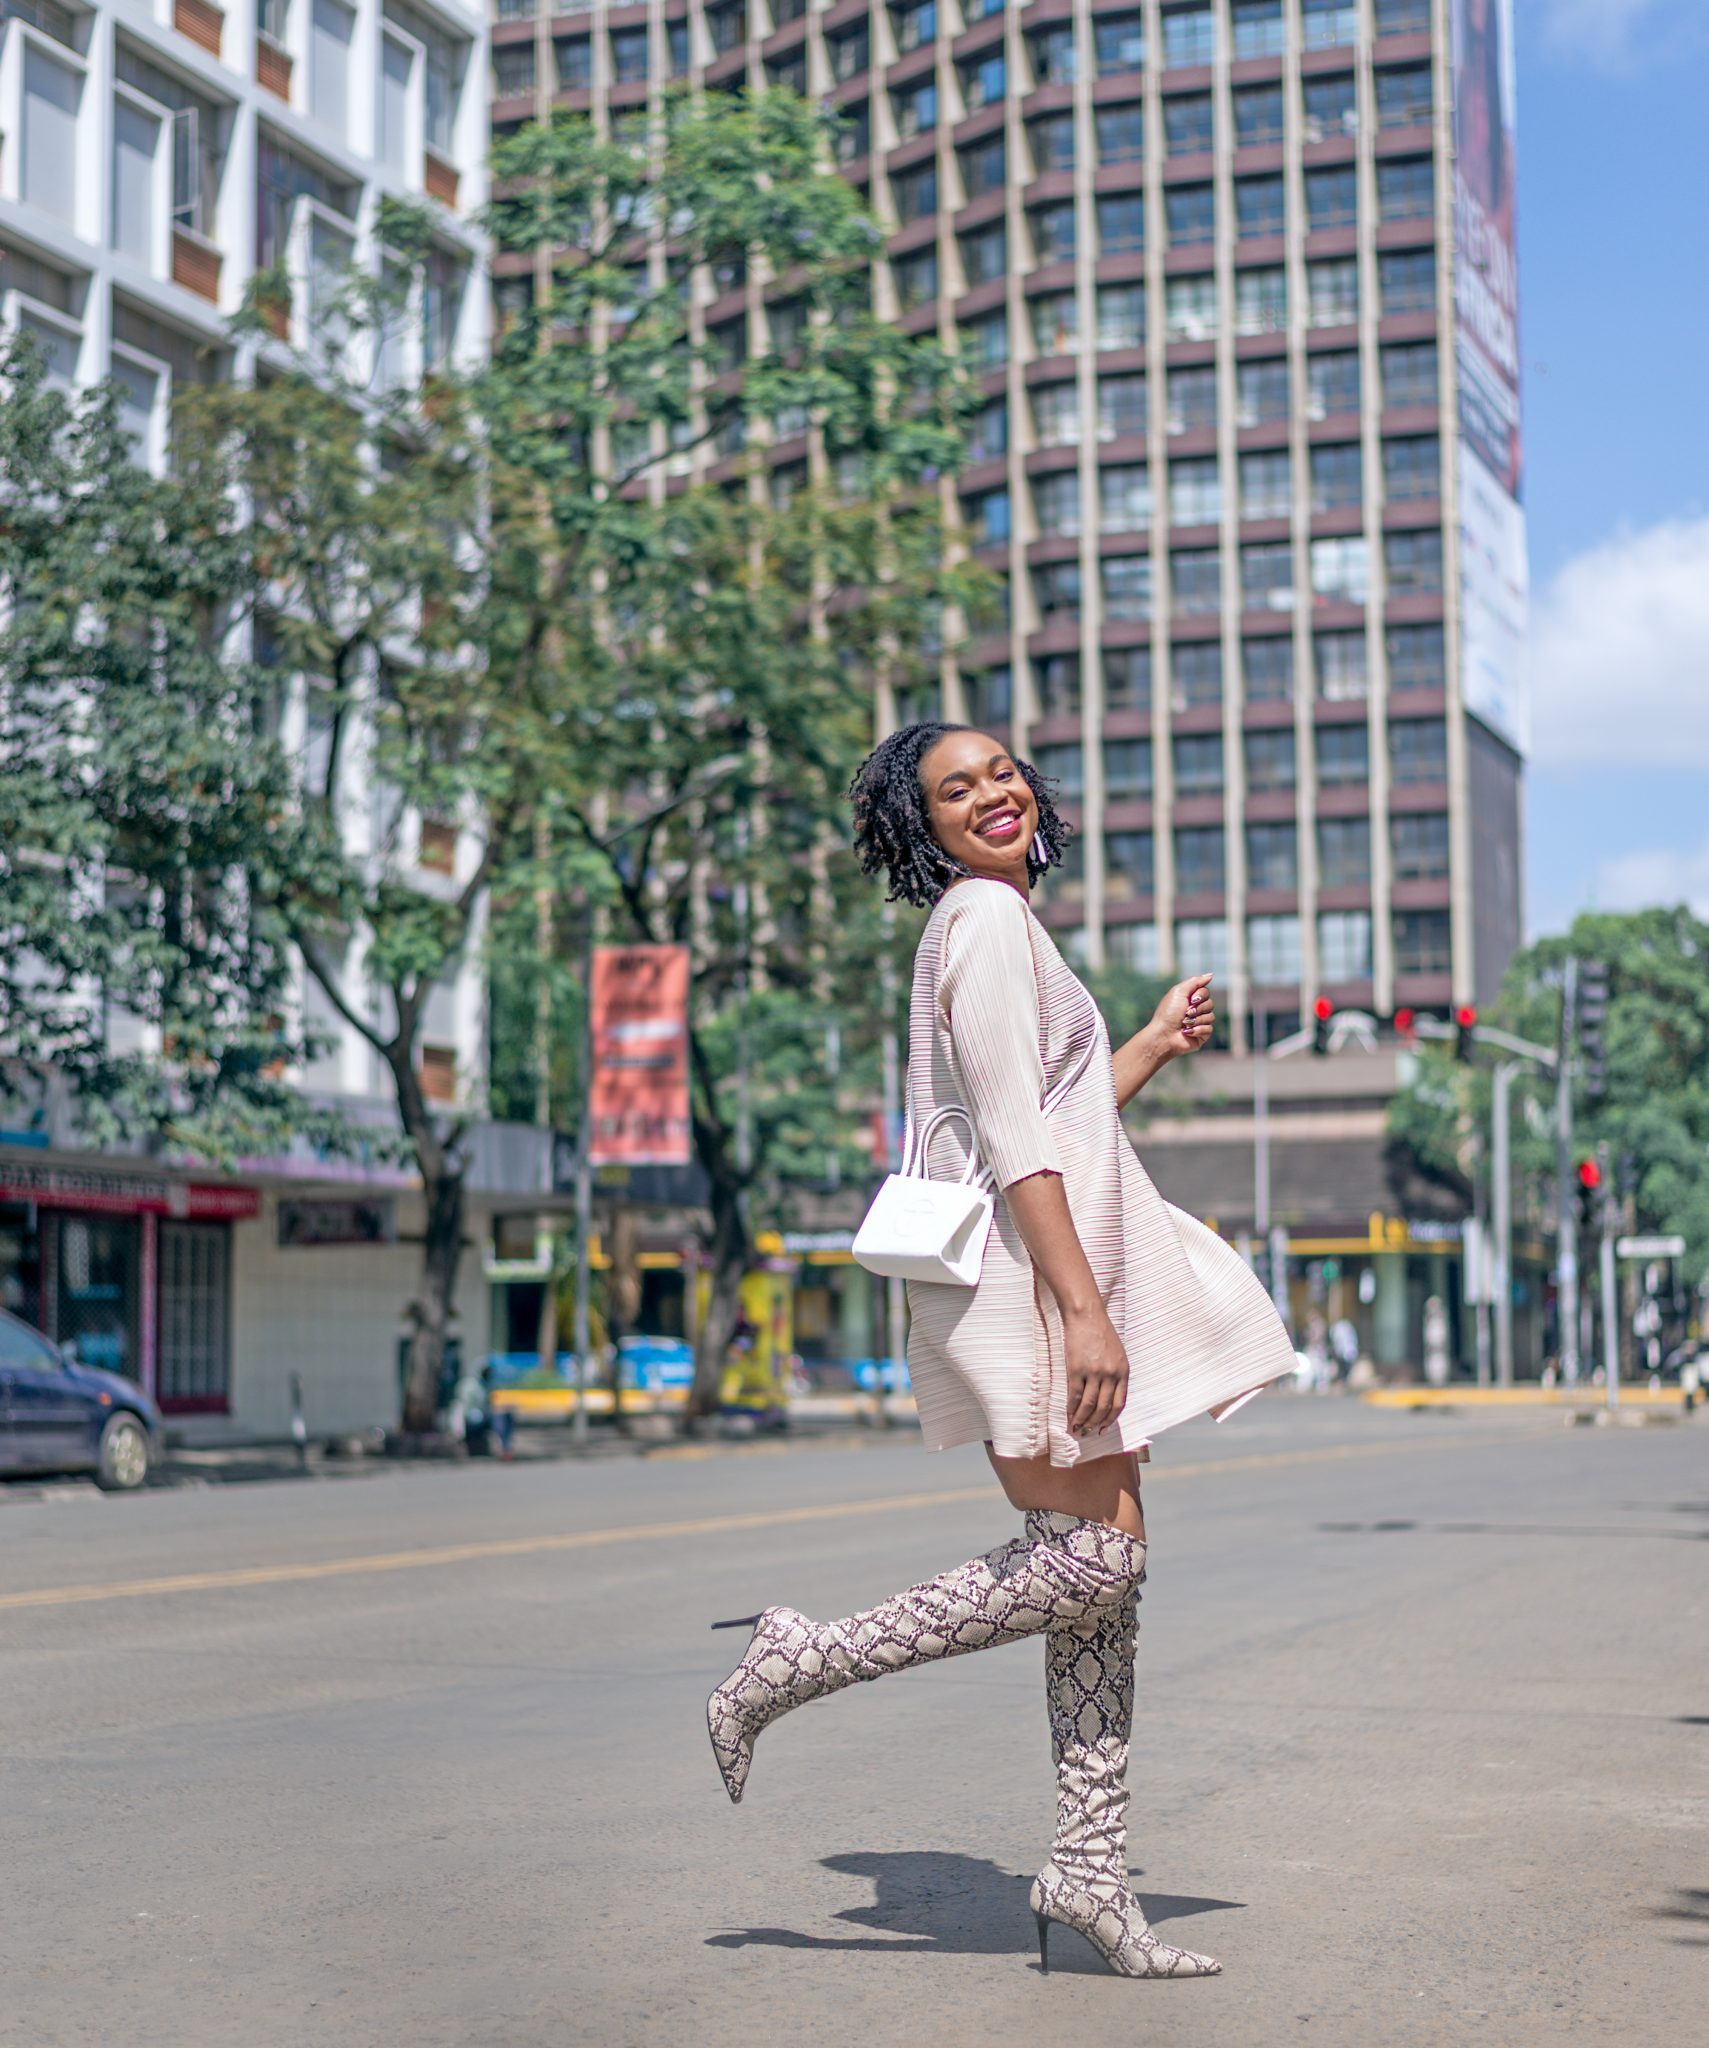 Ijeoma Kola kicking leg up while posing in the streets of Nairobi wearing cream mid-sleeve dress, white shoulder sling bag and snake skin thigh high boots